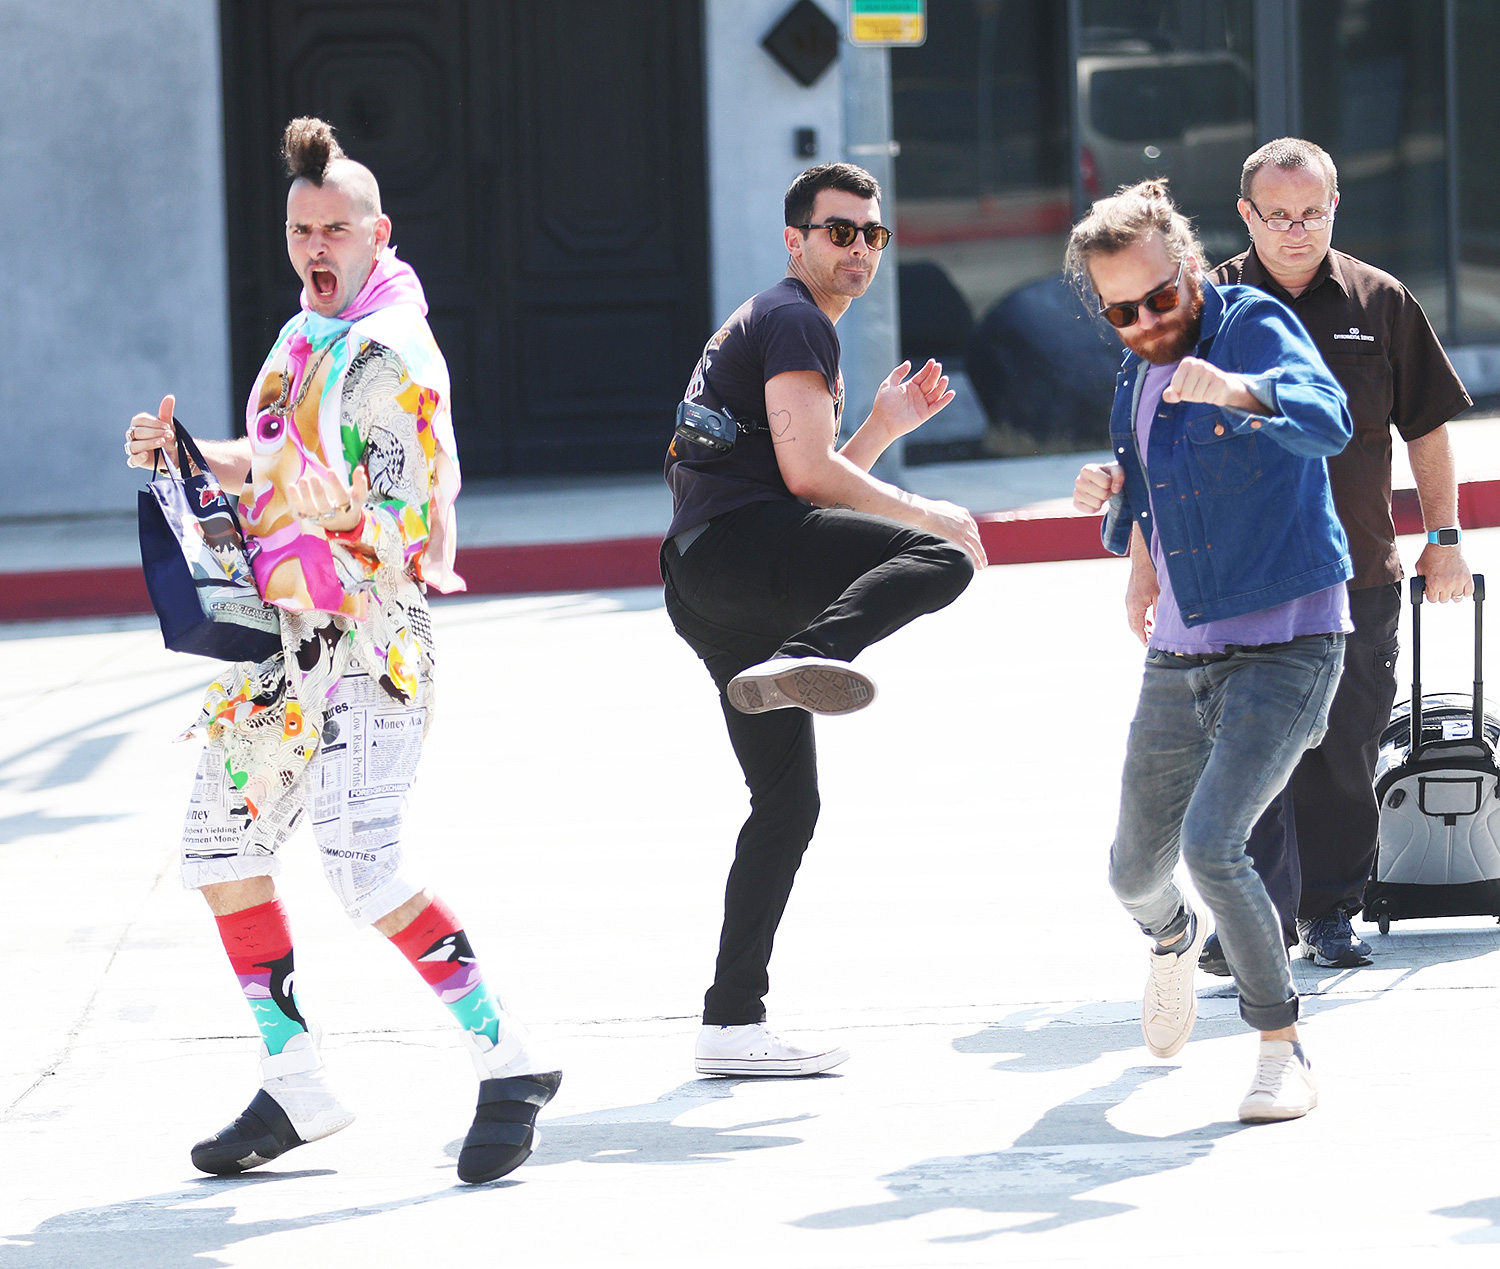 Joe Jonas and DNCE show off their karate moves while walking down Melrose Ave